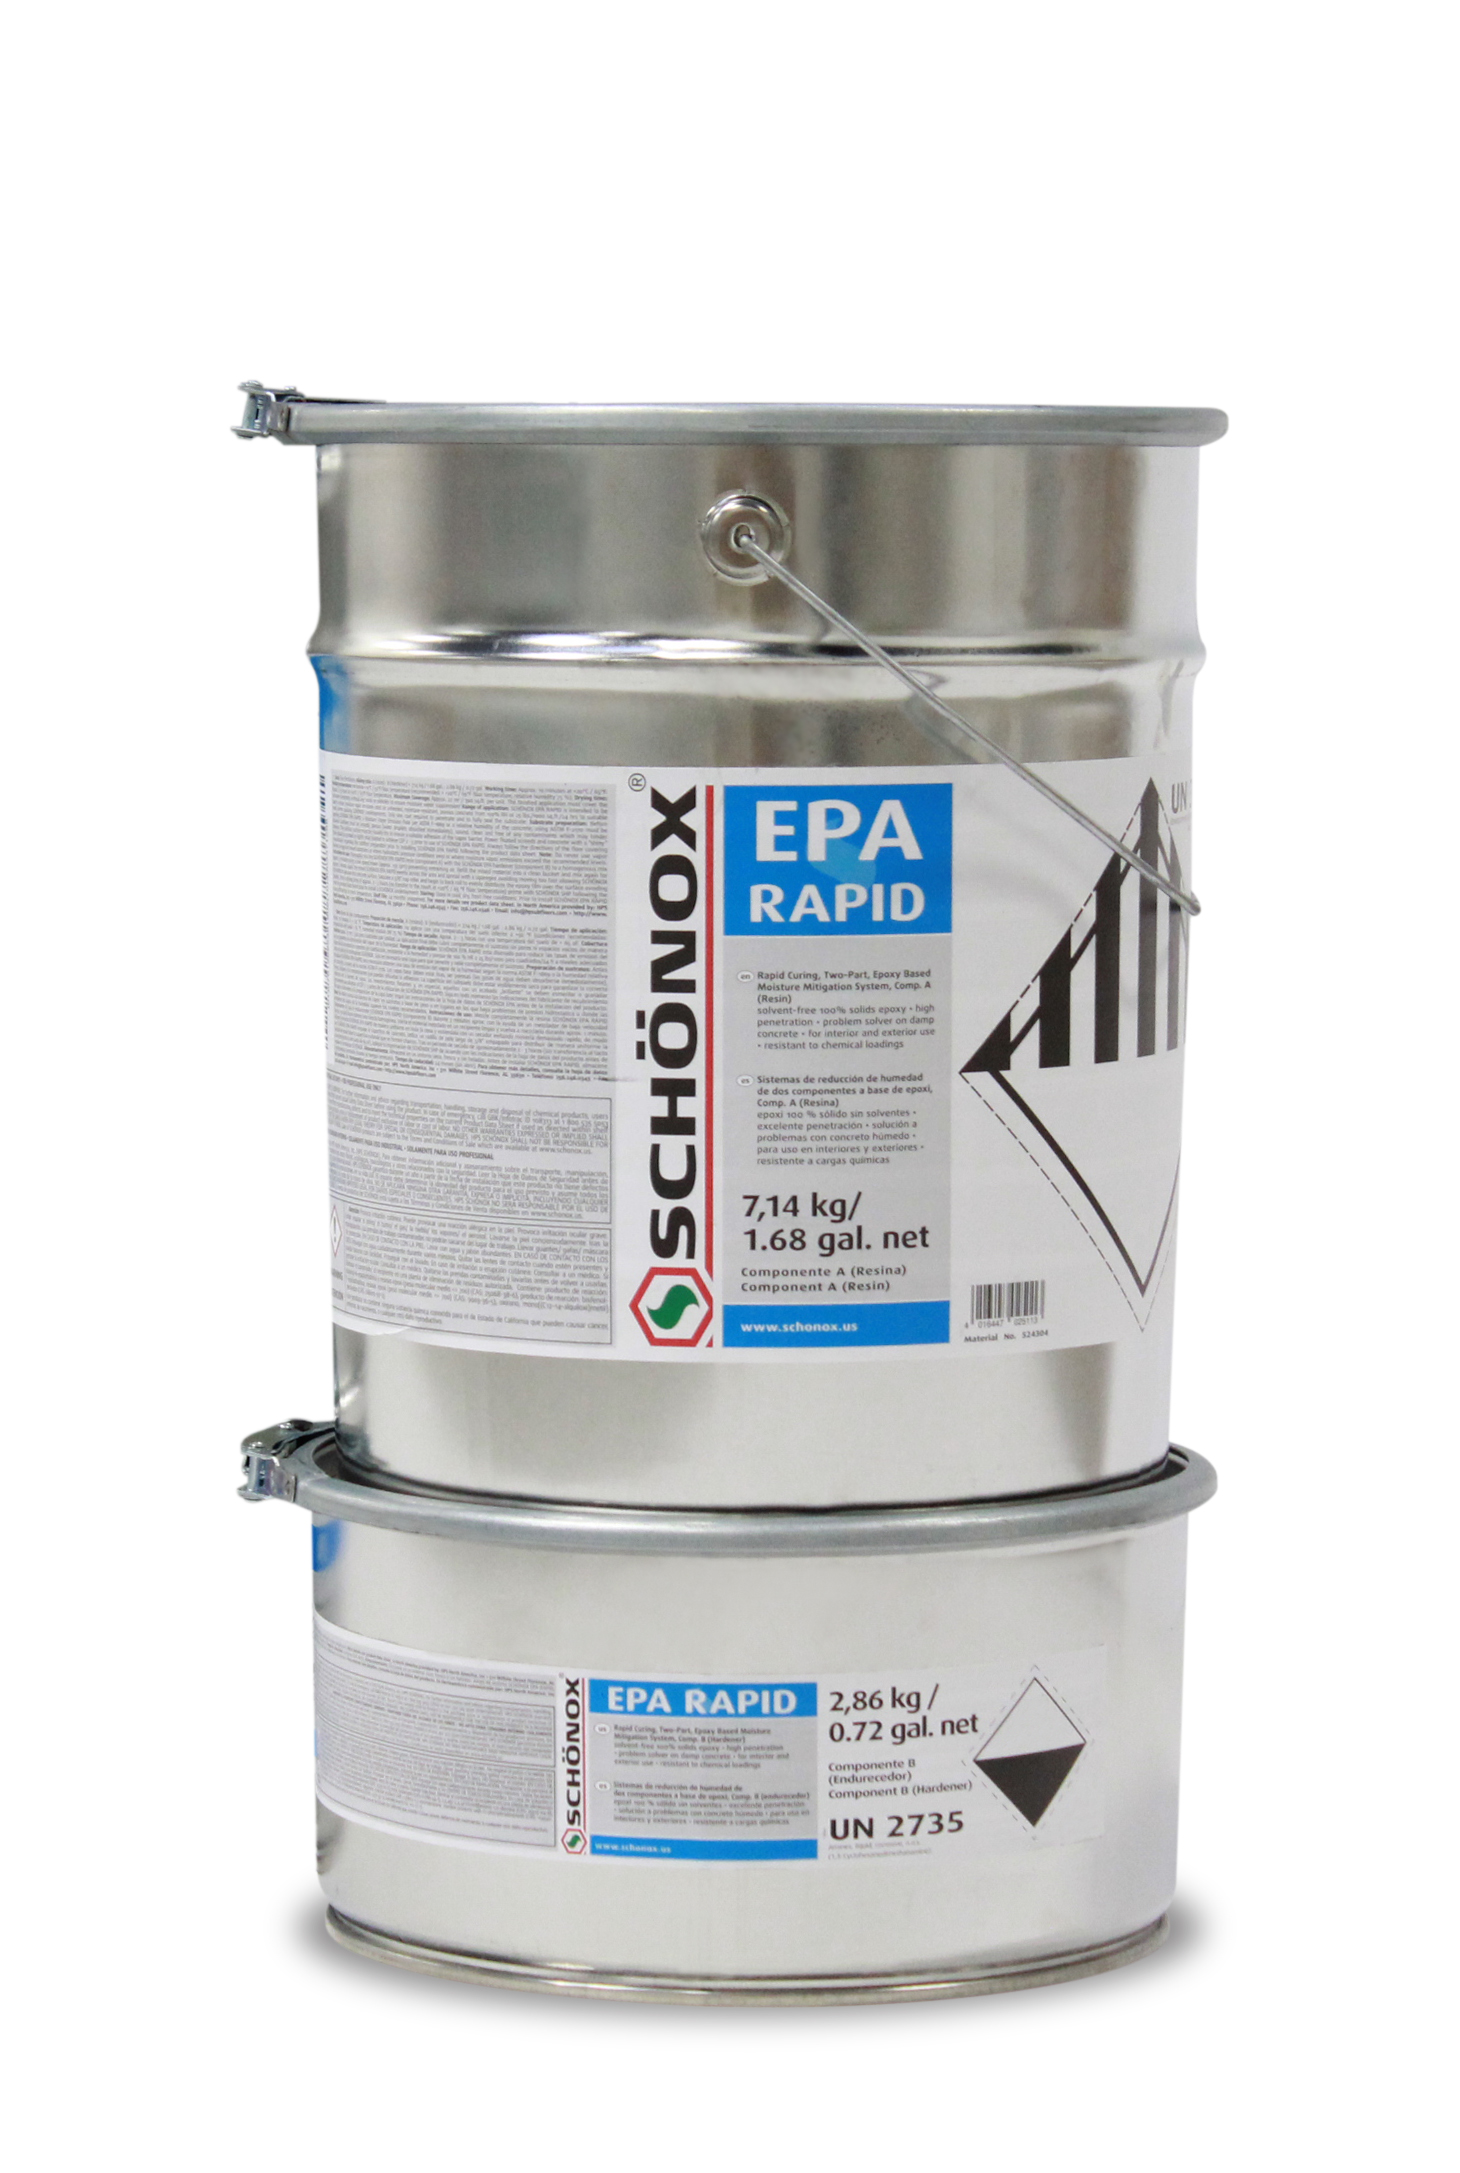 Image of EPA Rapid Product Bucket